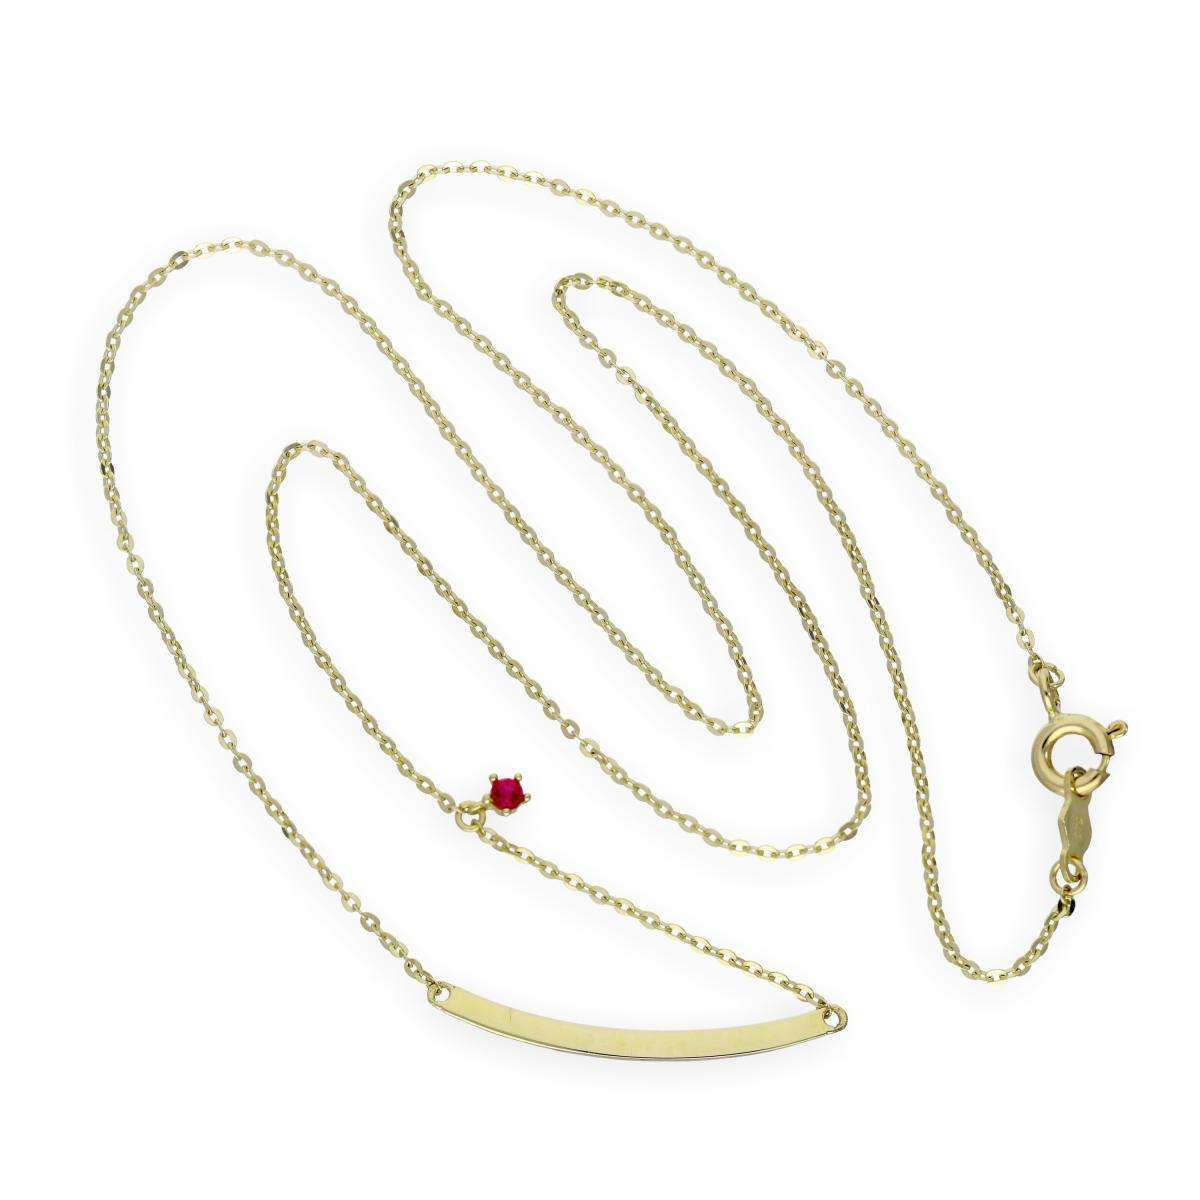 Alterative image for 9ct Gold 18 Inch Chain w Curved Bar & Ruby CZ Crystal